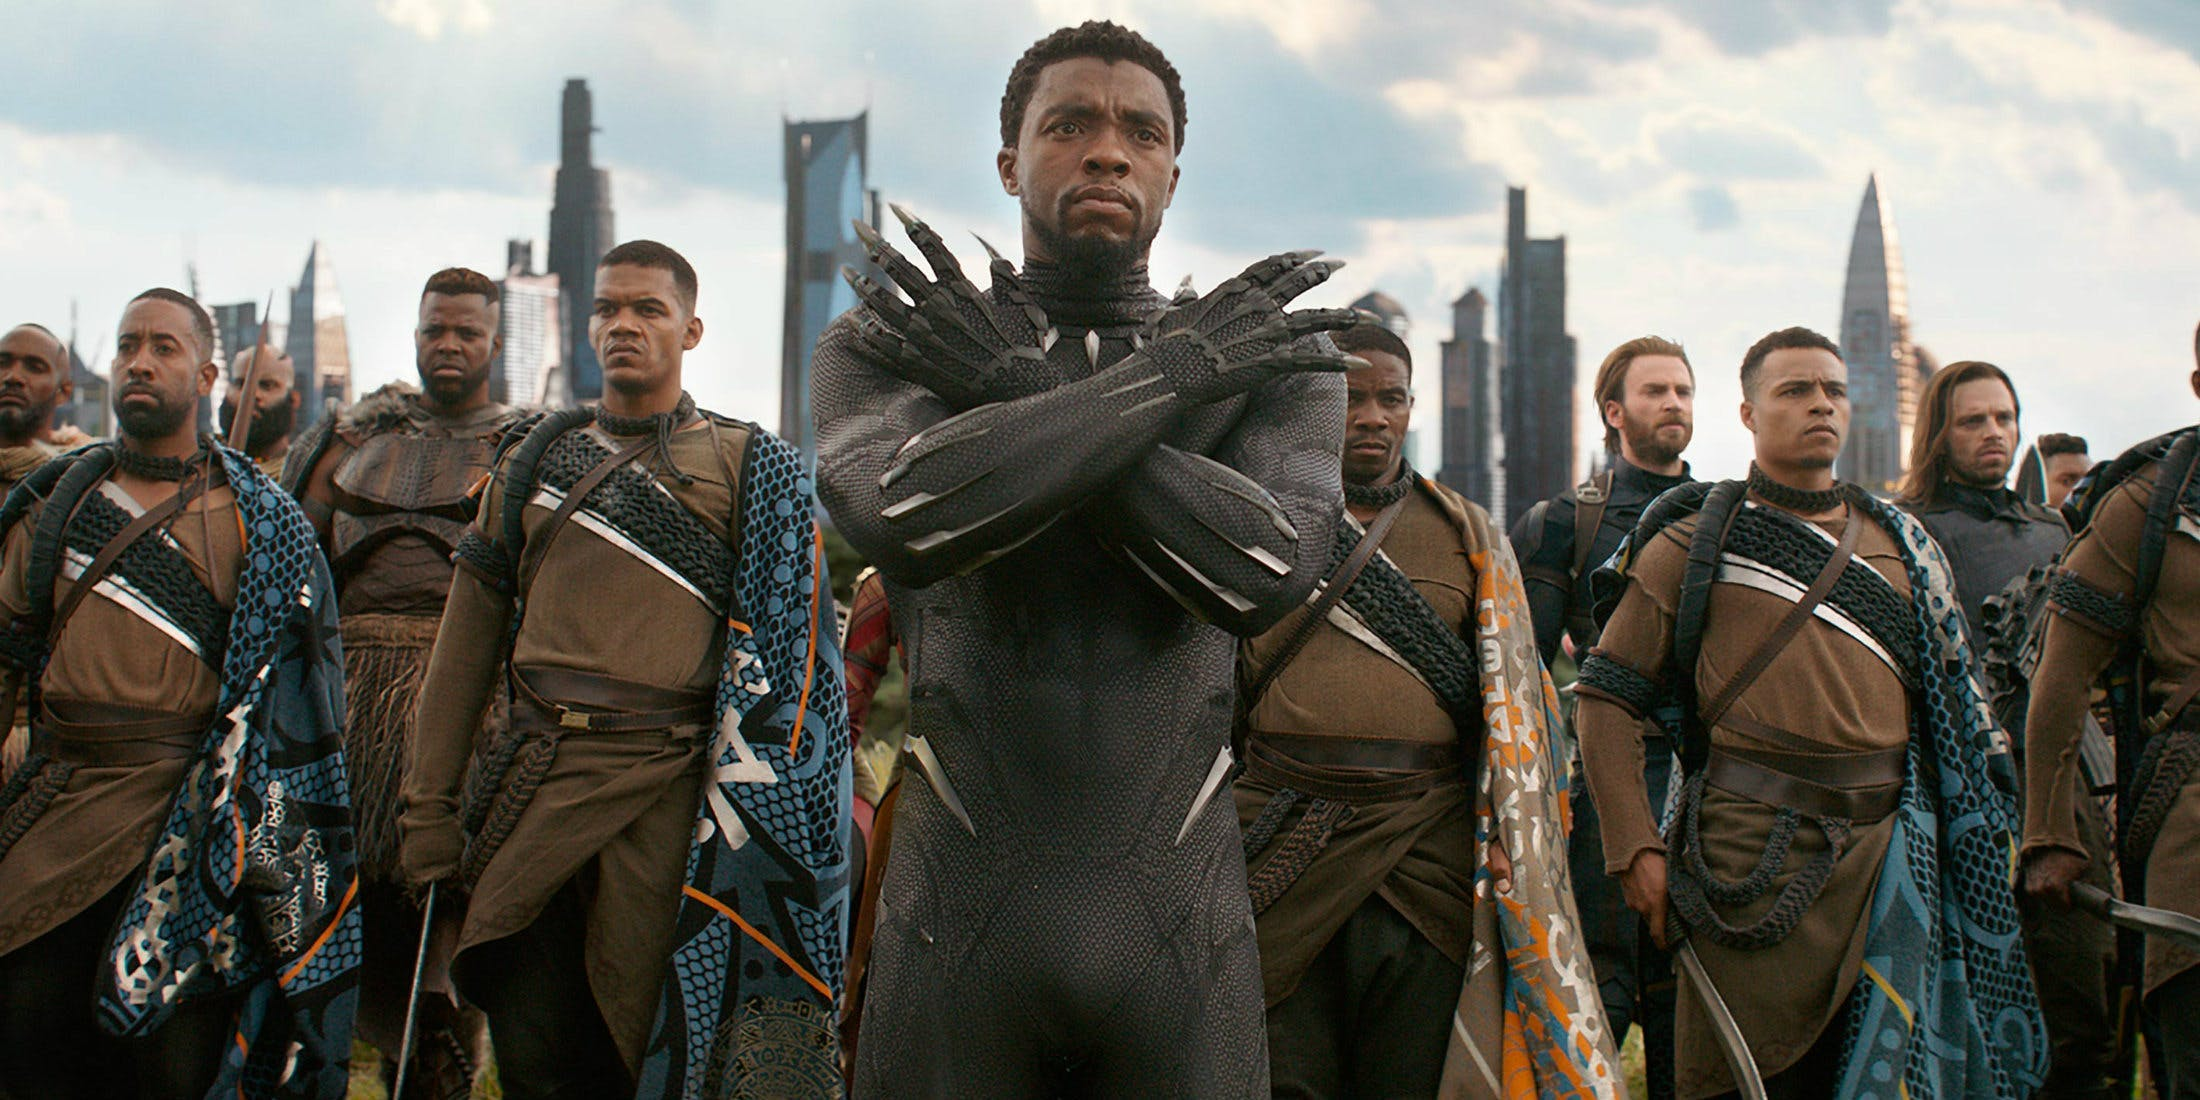 Black-Panther-and-Wakanda-army-in-Avengers-Infinity-War-1